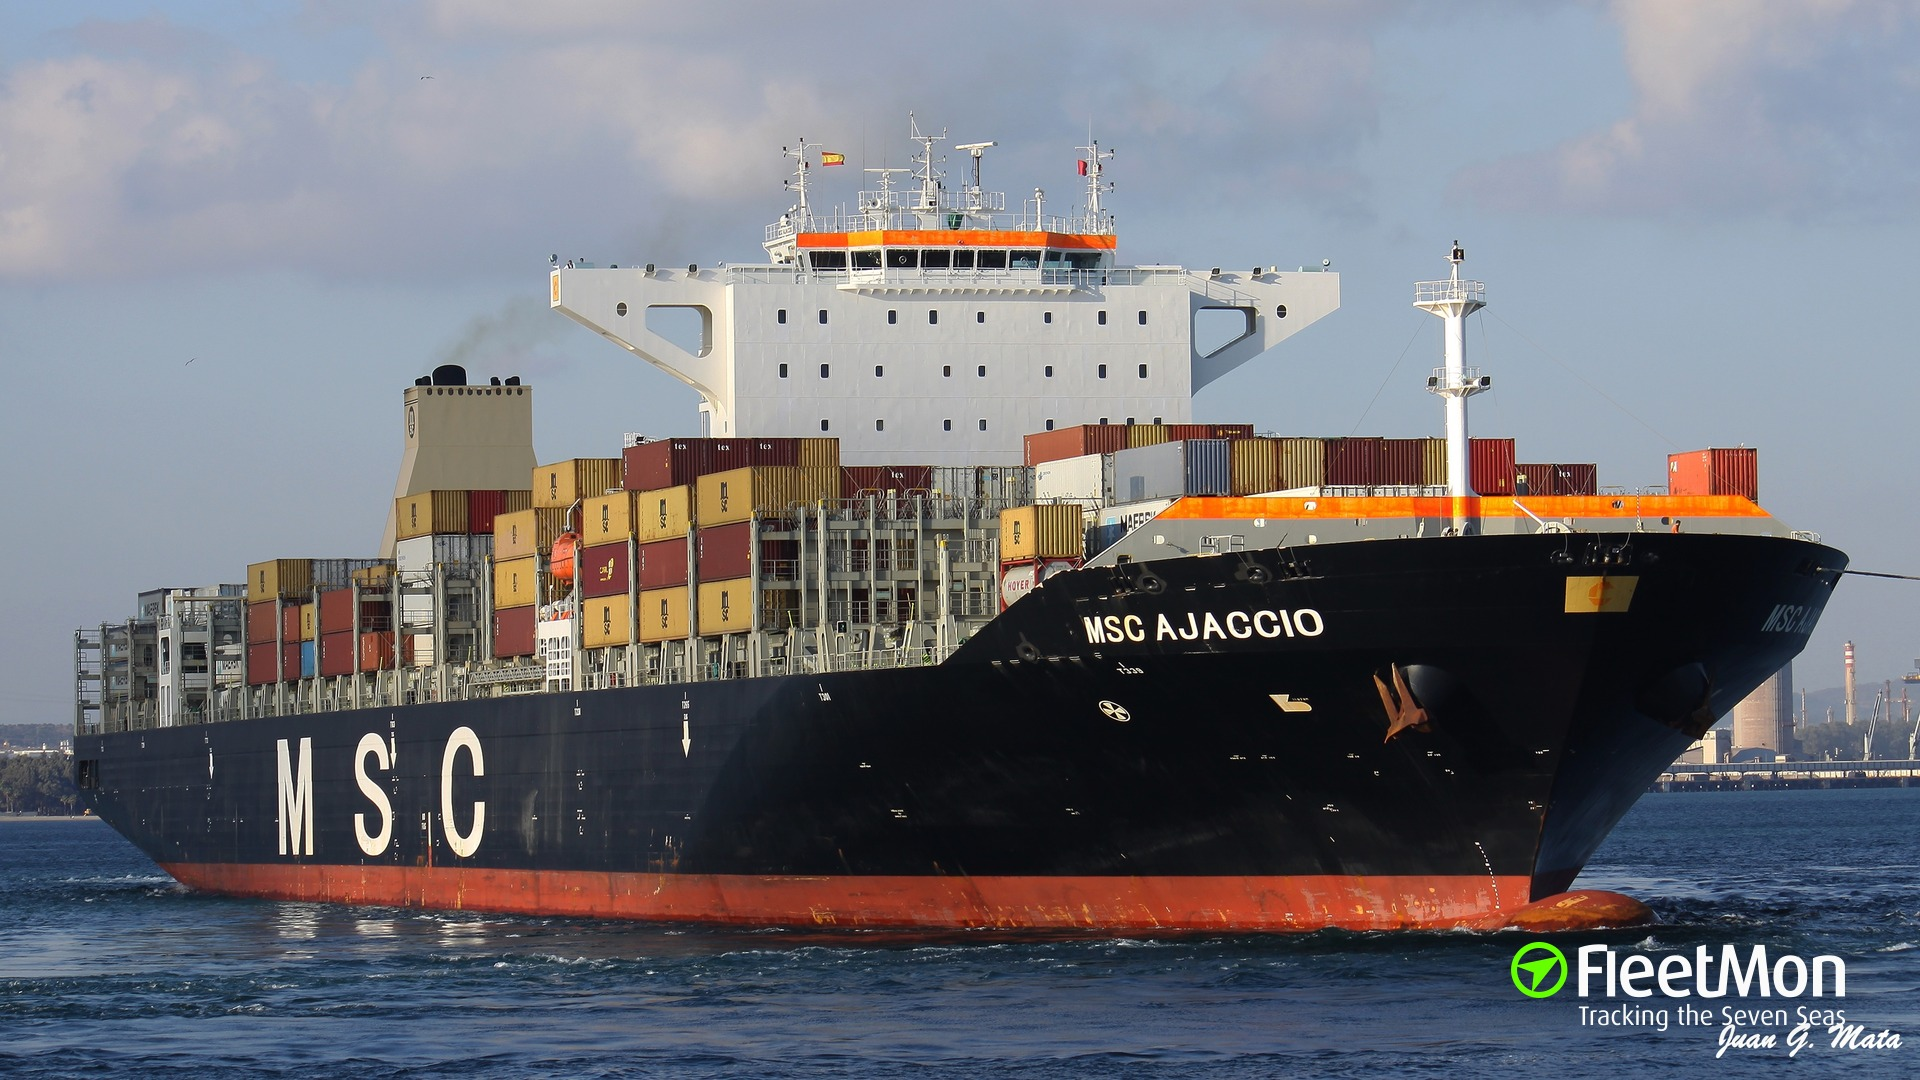 photo of msc ajaccio  imo  9605267  mmsi  229625000